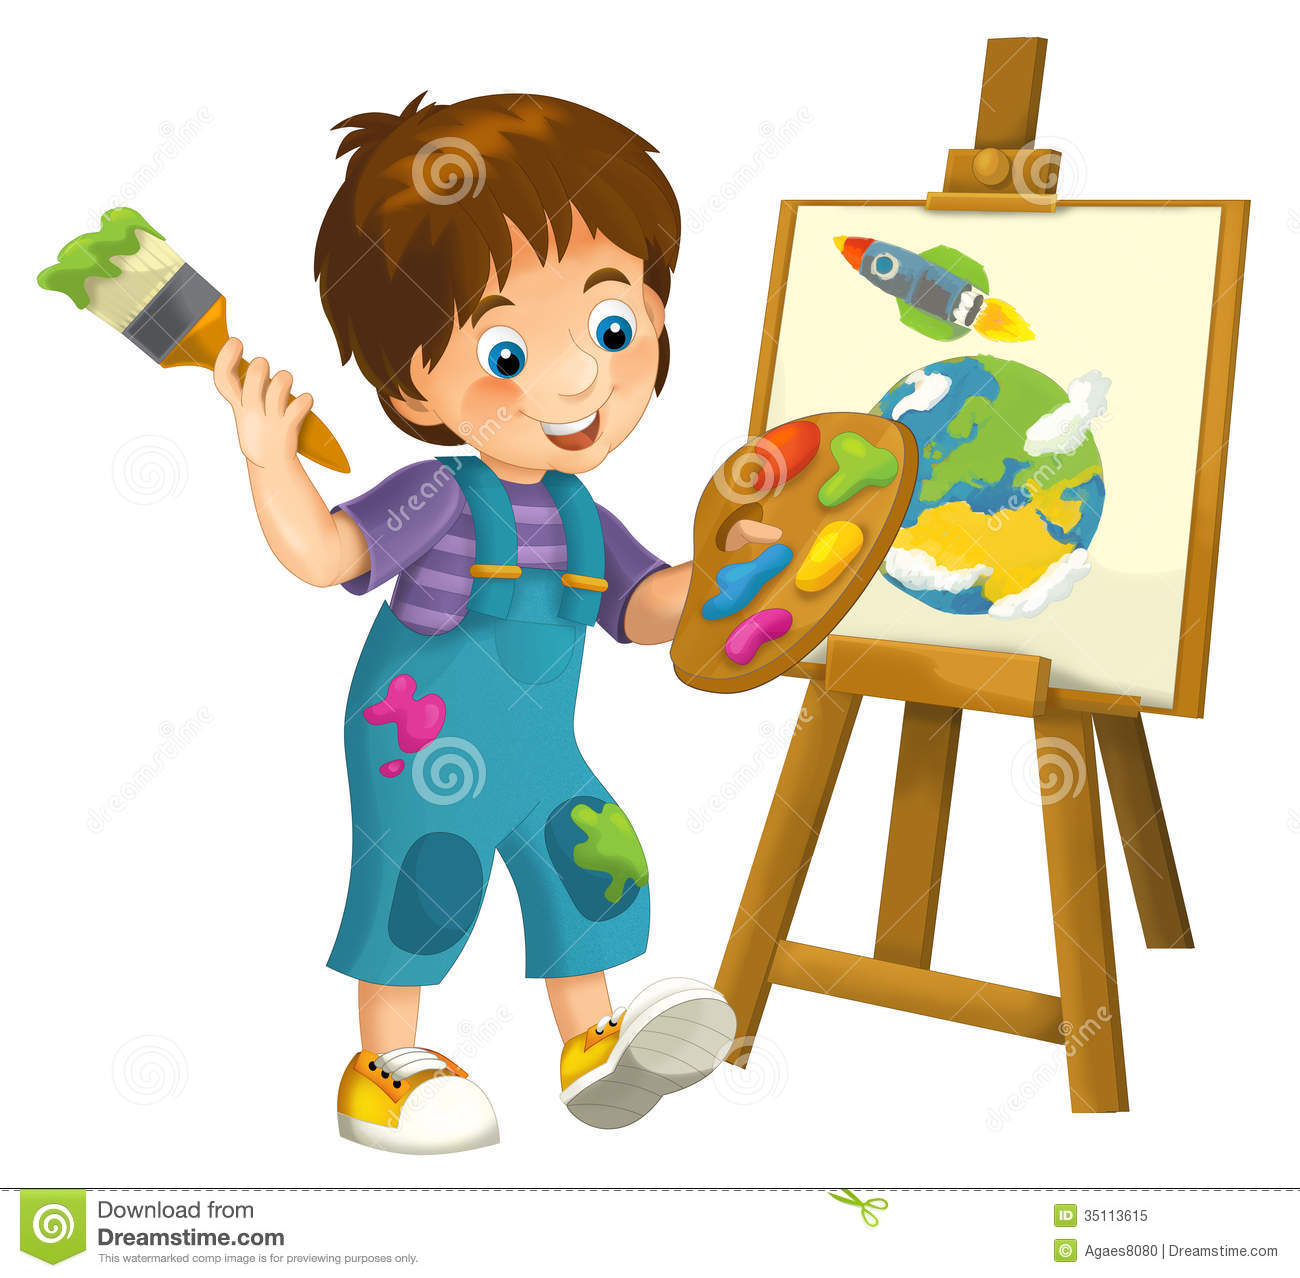 cartoon child illustration for the children royalty free stock photo - Cartoon Children Pictures